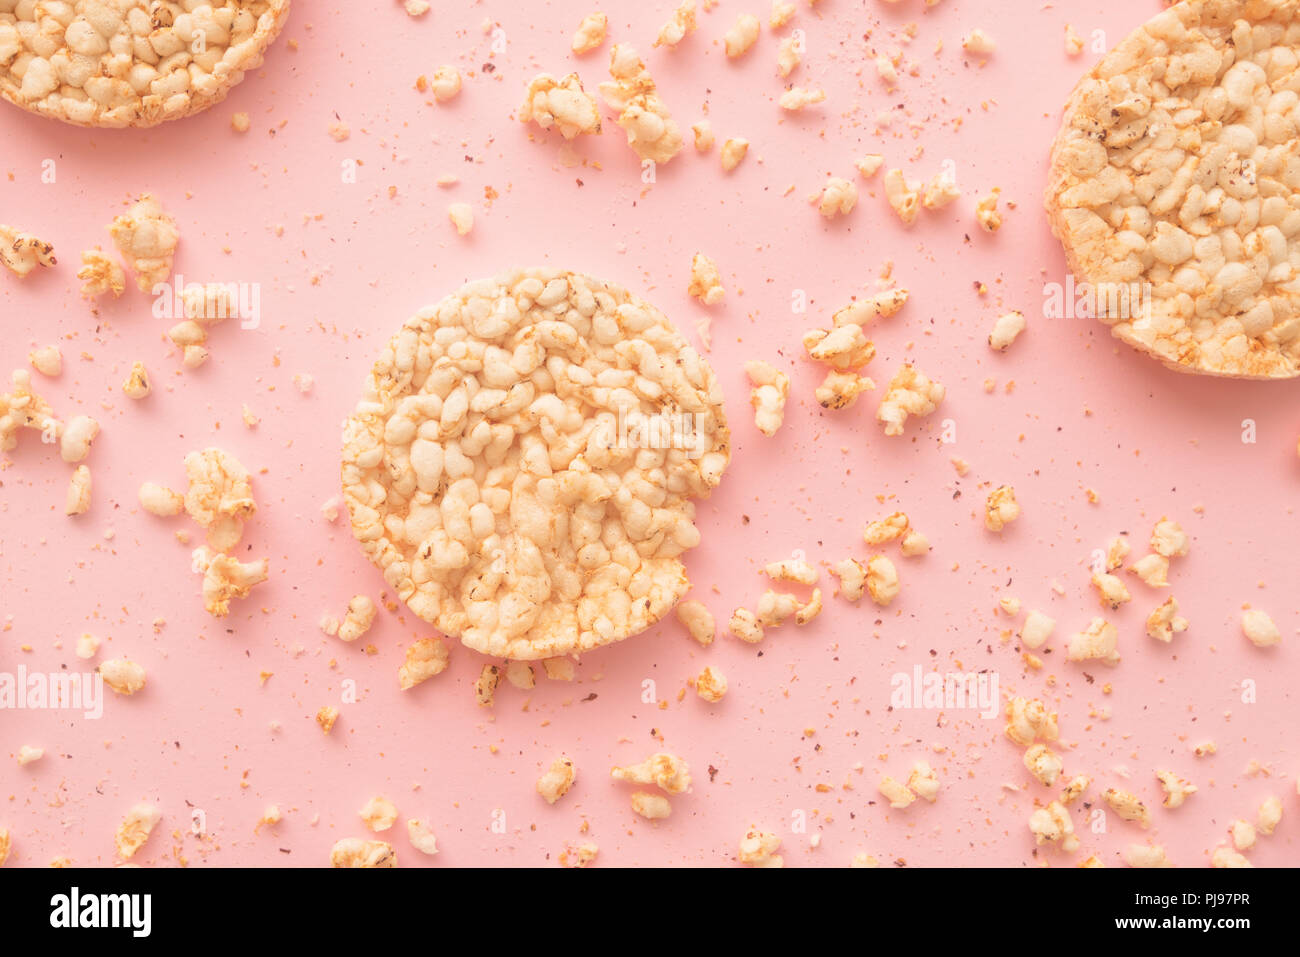 Flat lay crunchy rice cakes on pastel pink background, overhead top down view - Stock Image